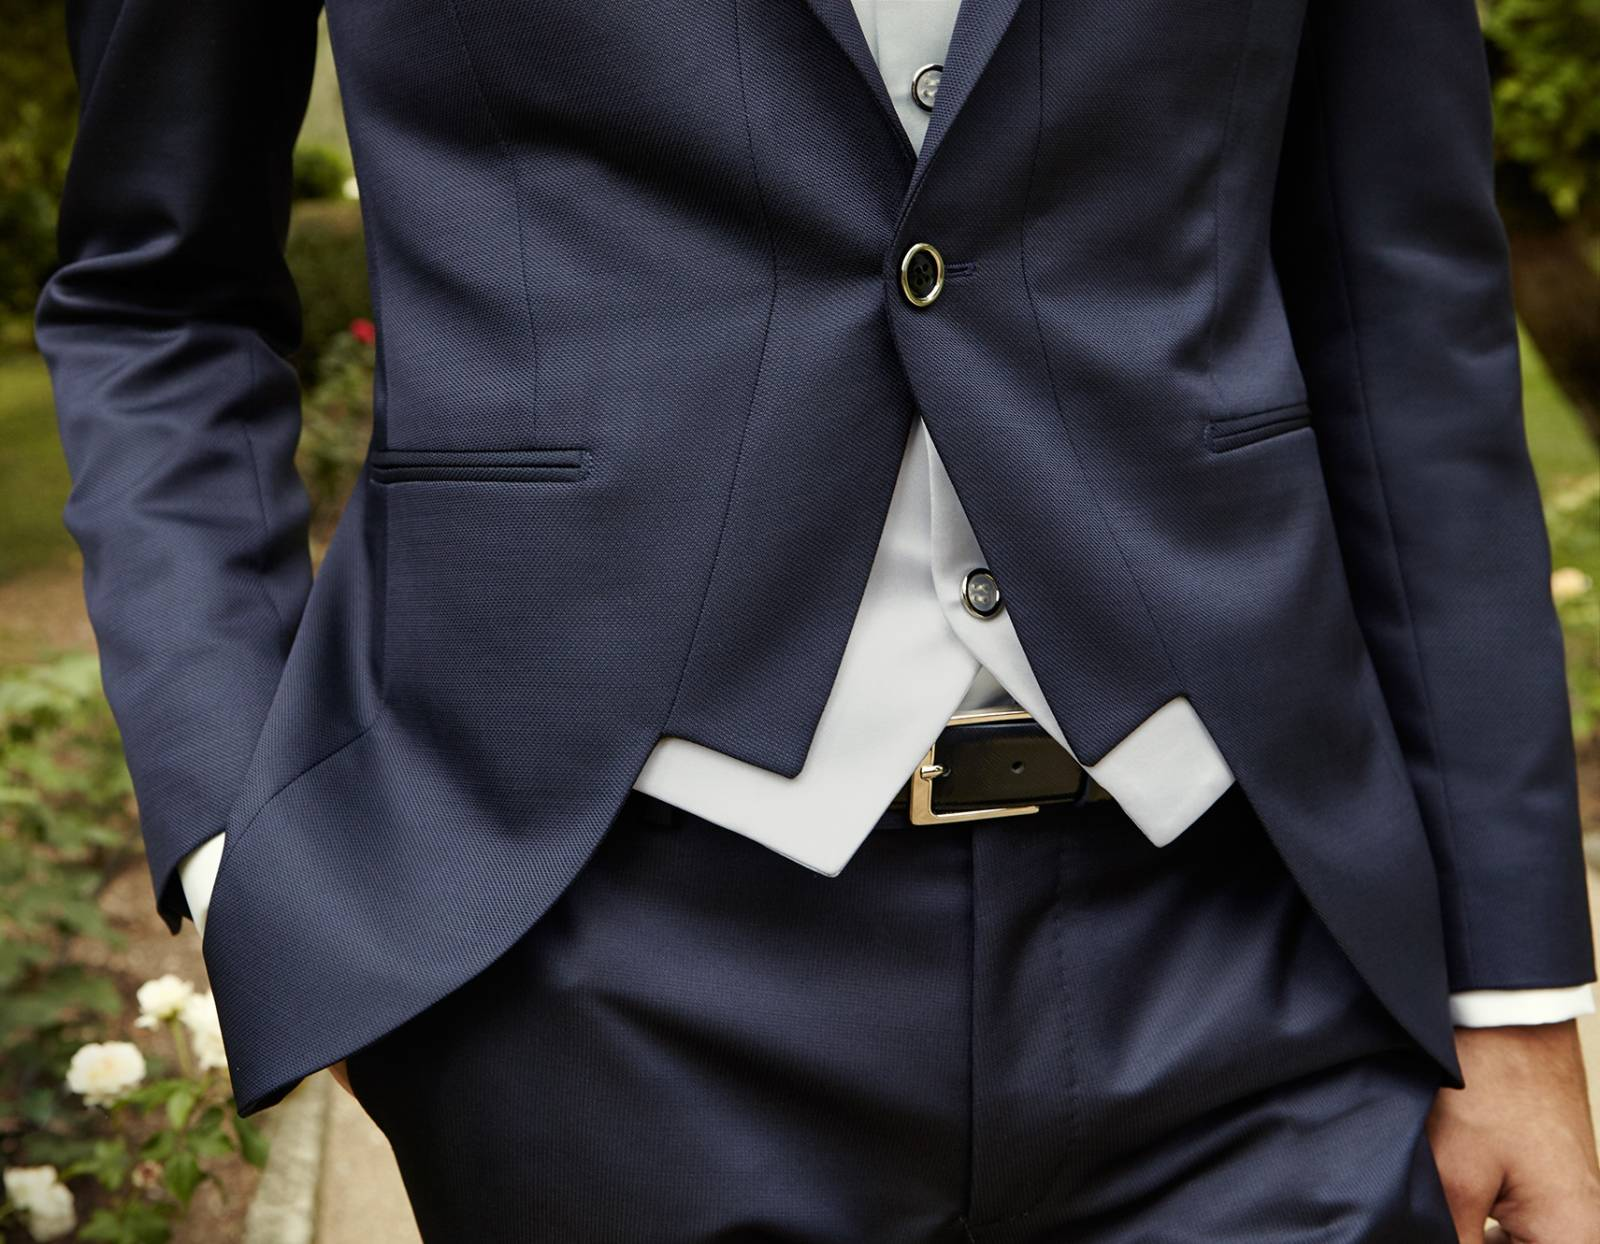 VESTE de costume mariage CINTREE manosque